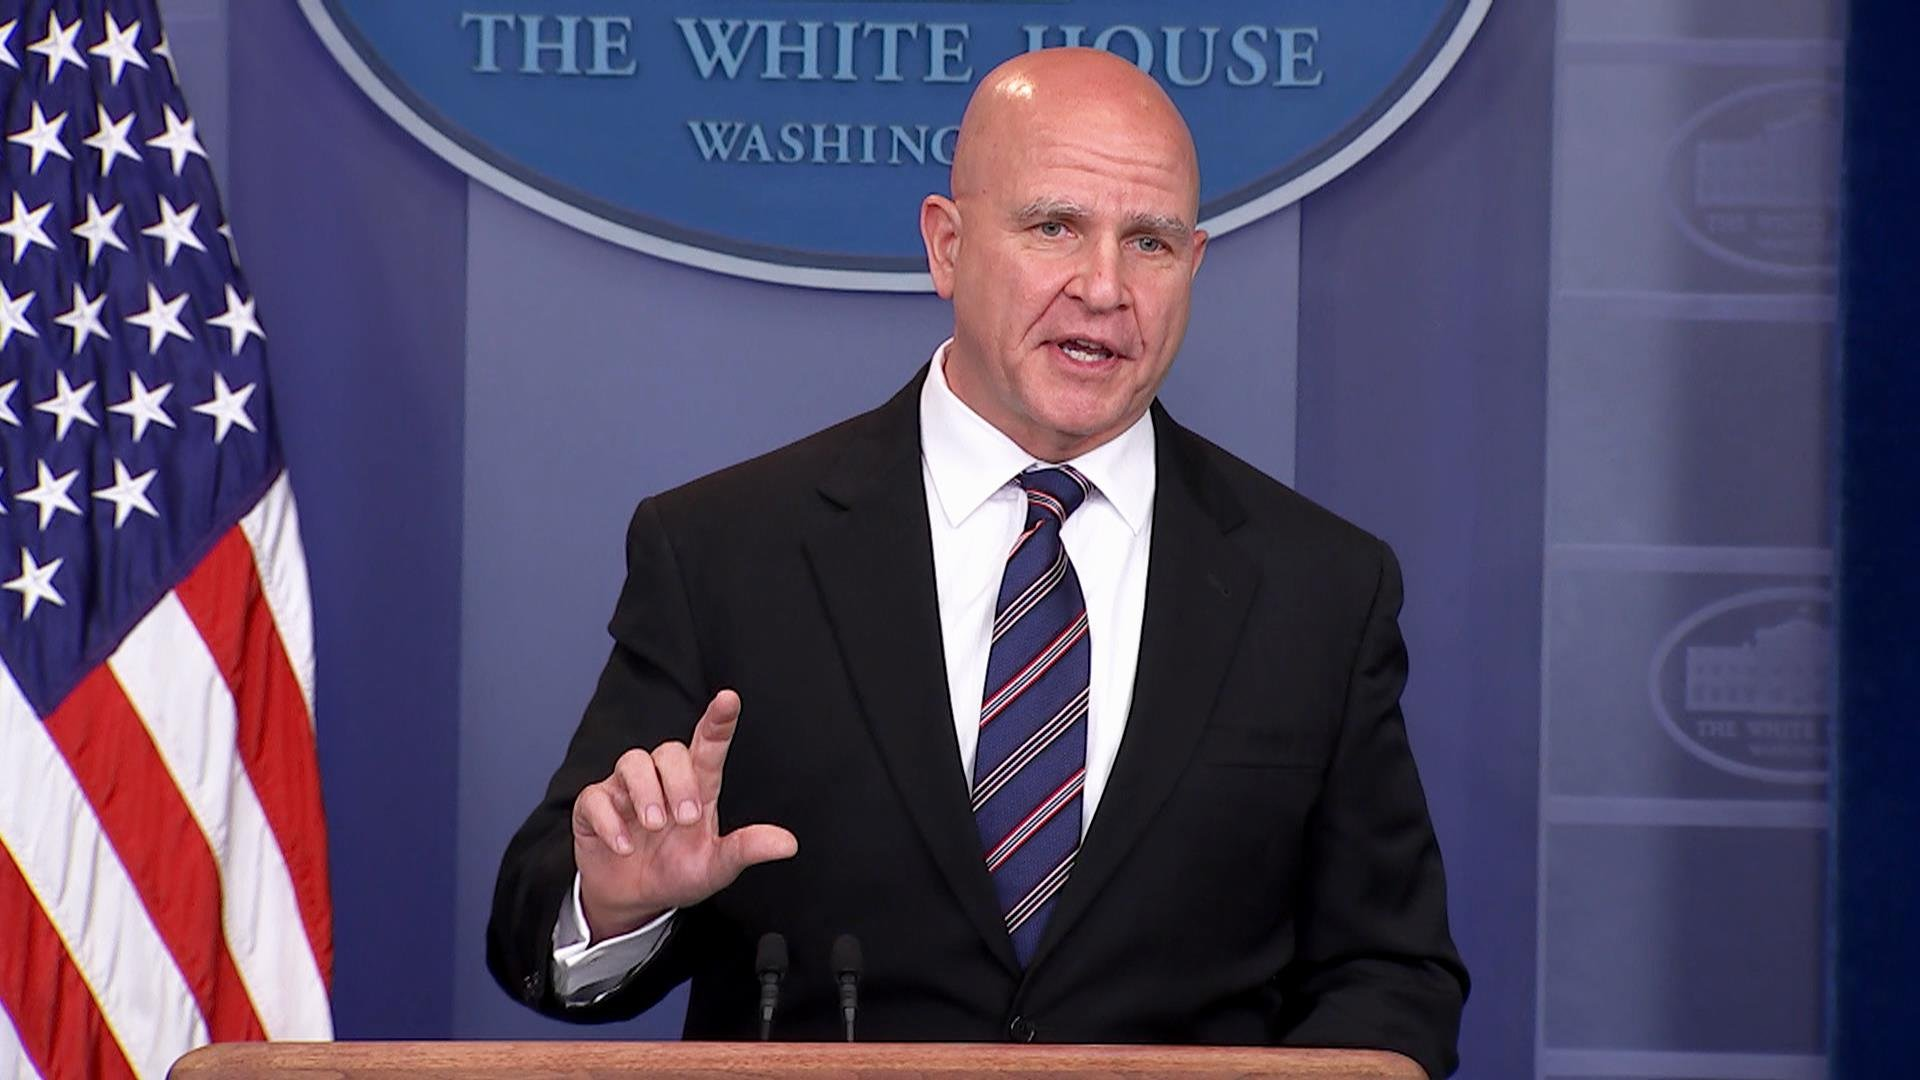 White House denies report that security adviser HR McMaster is being replaced